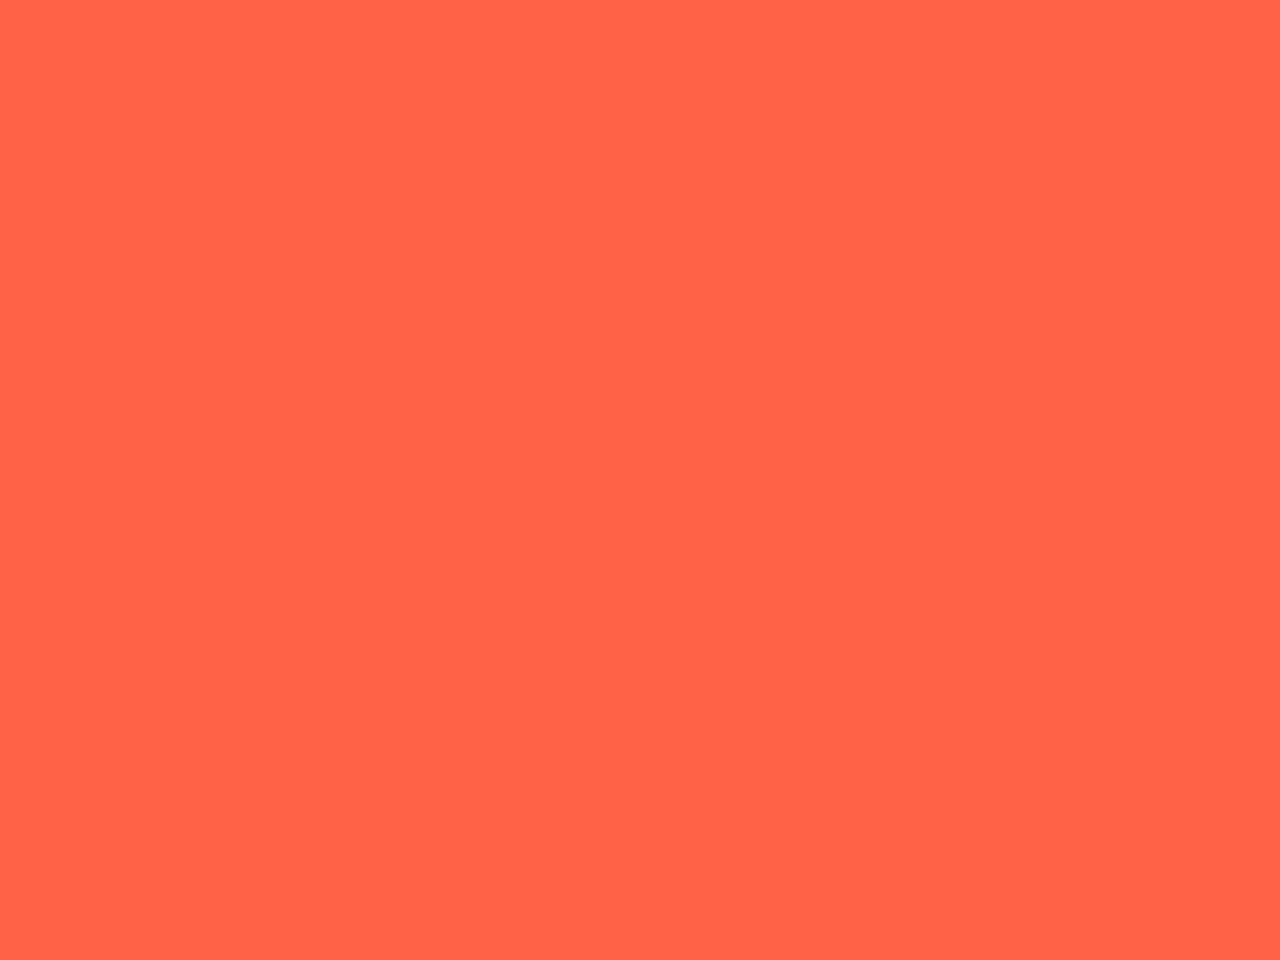 1280x960 Tomato Solid Color Background